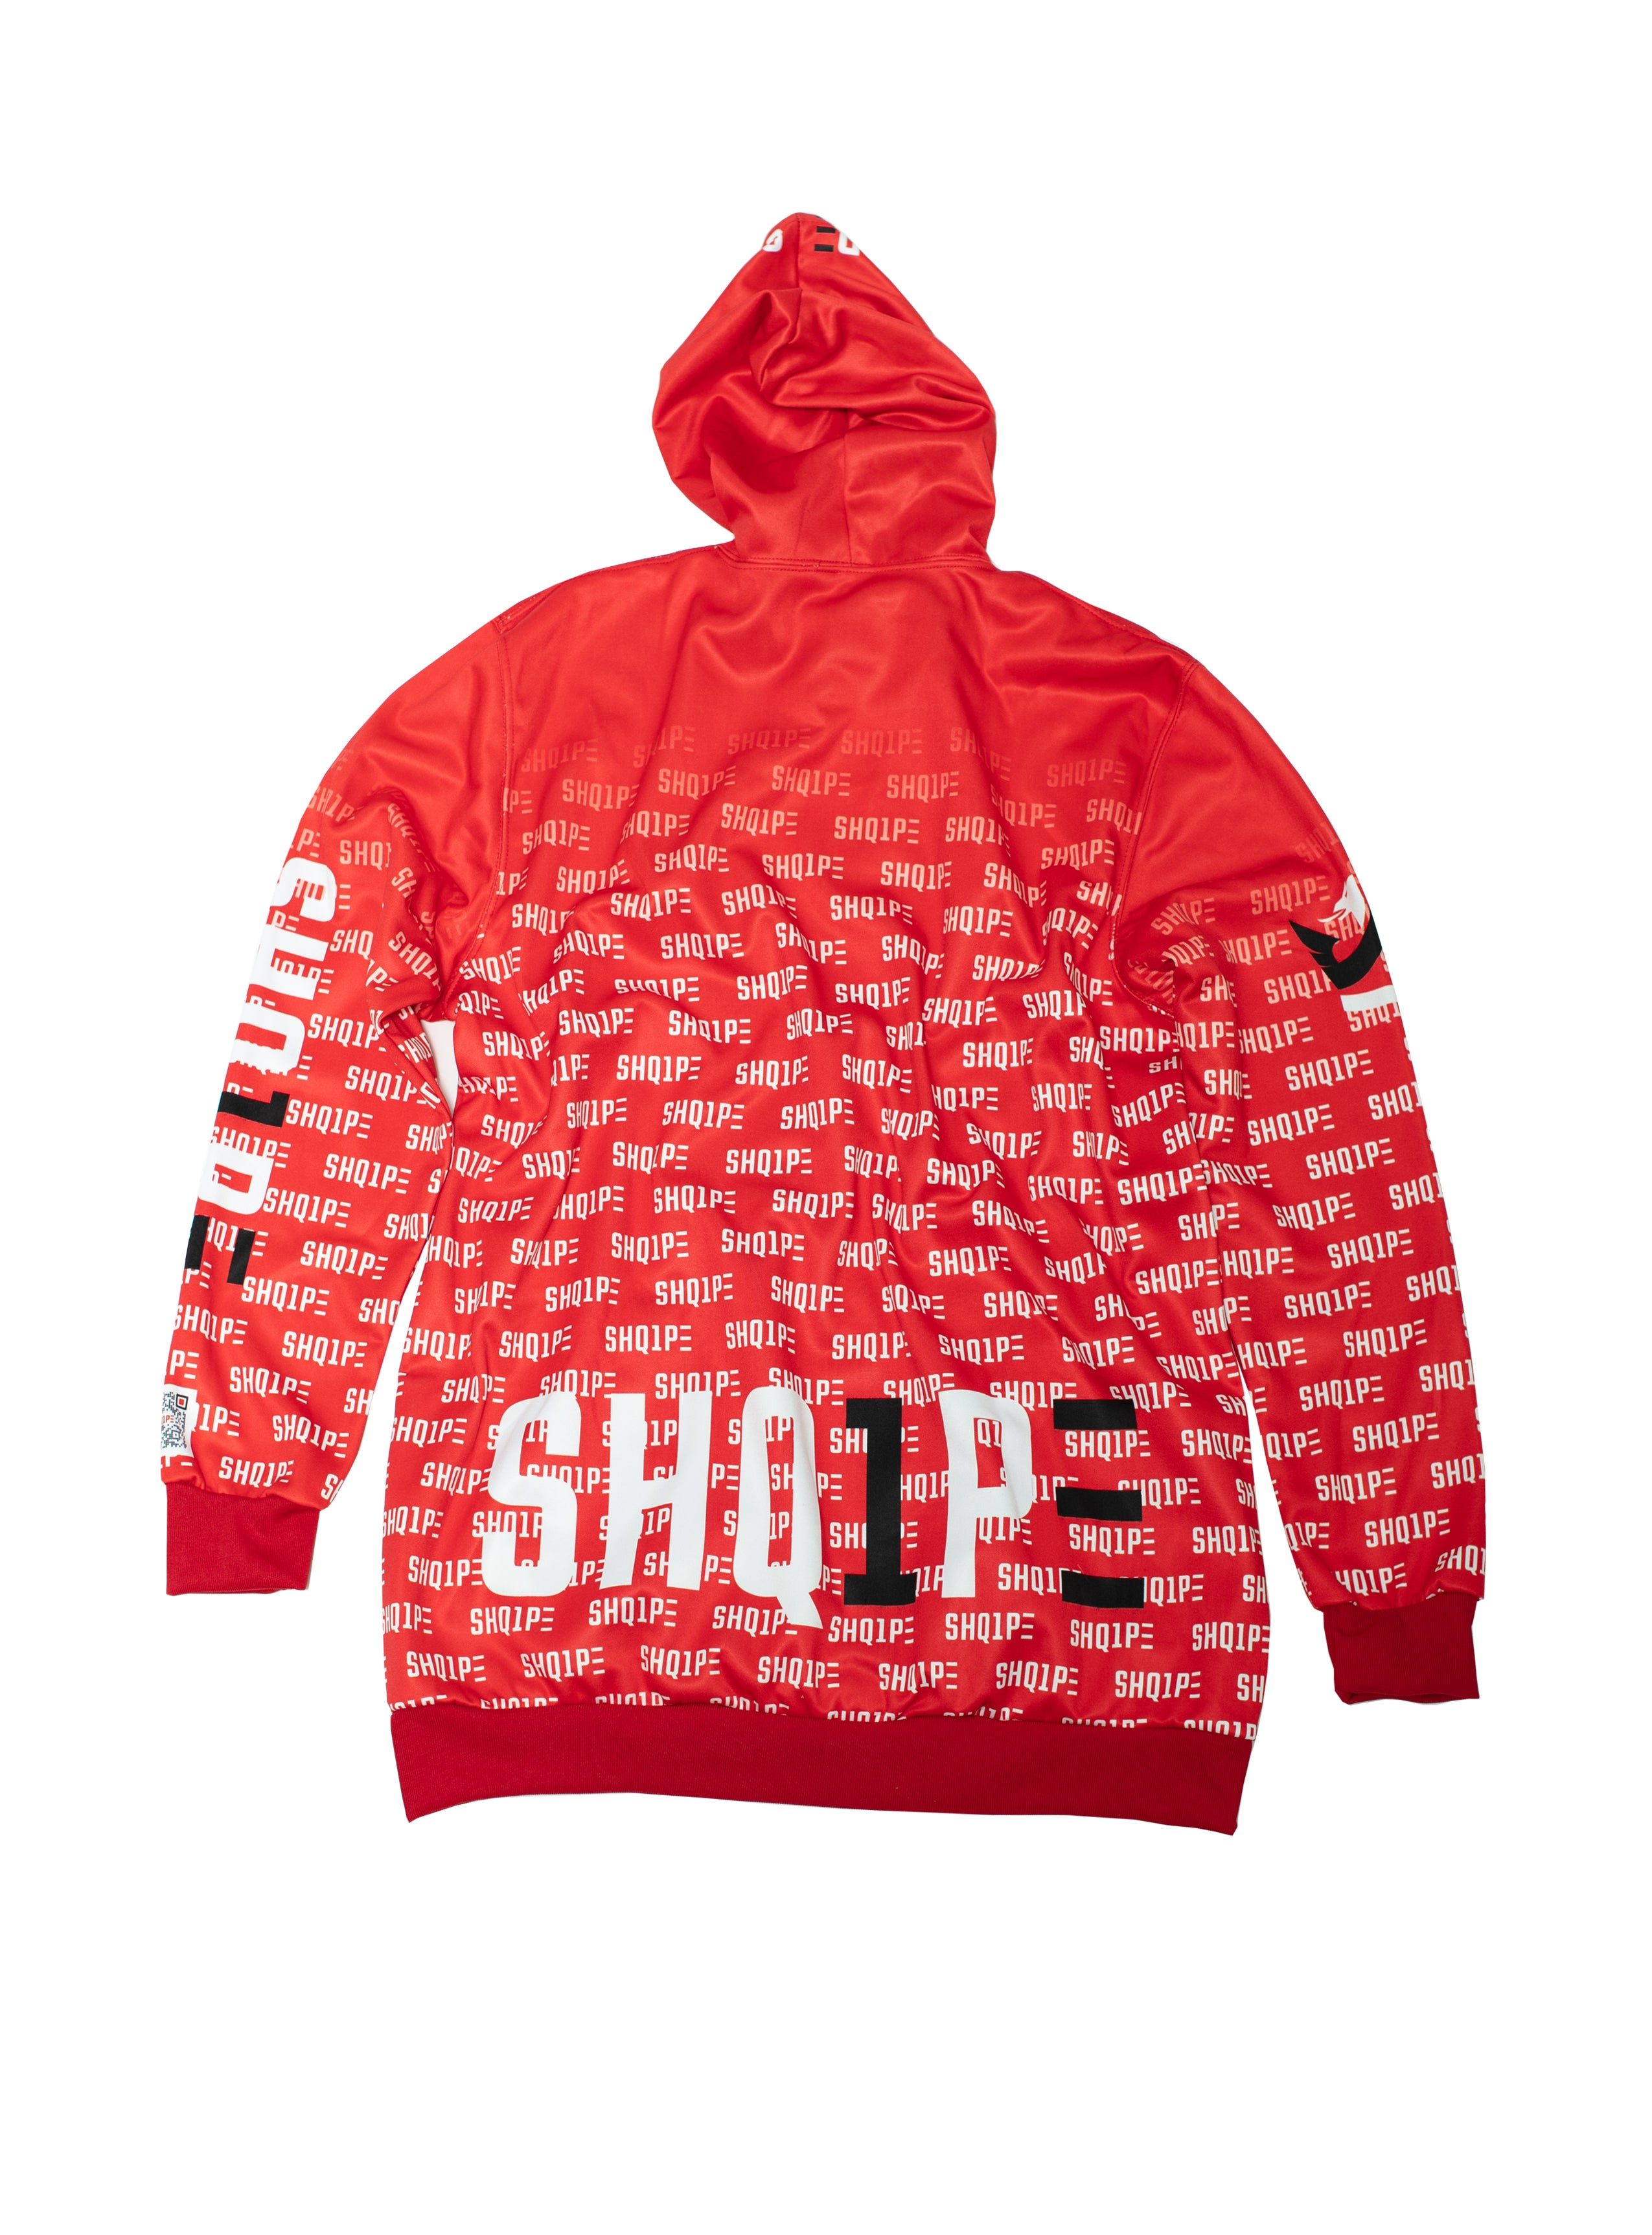 Next Level Shq1pe Hoodie_Red Limited